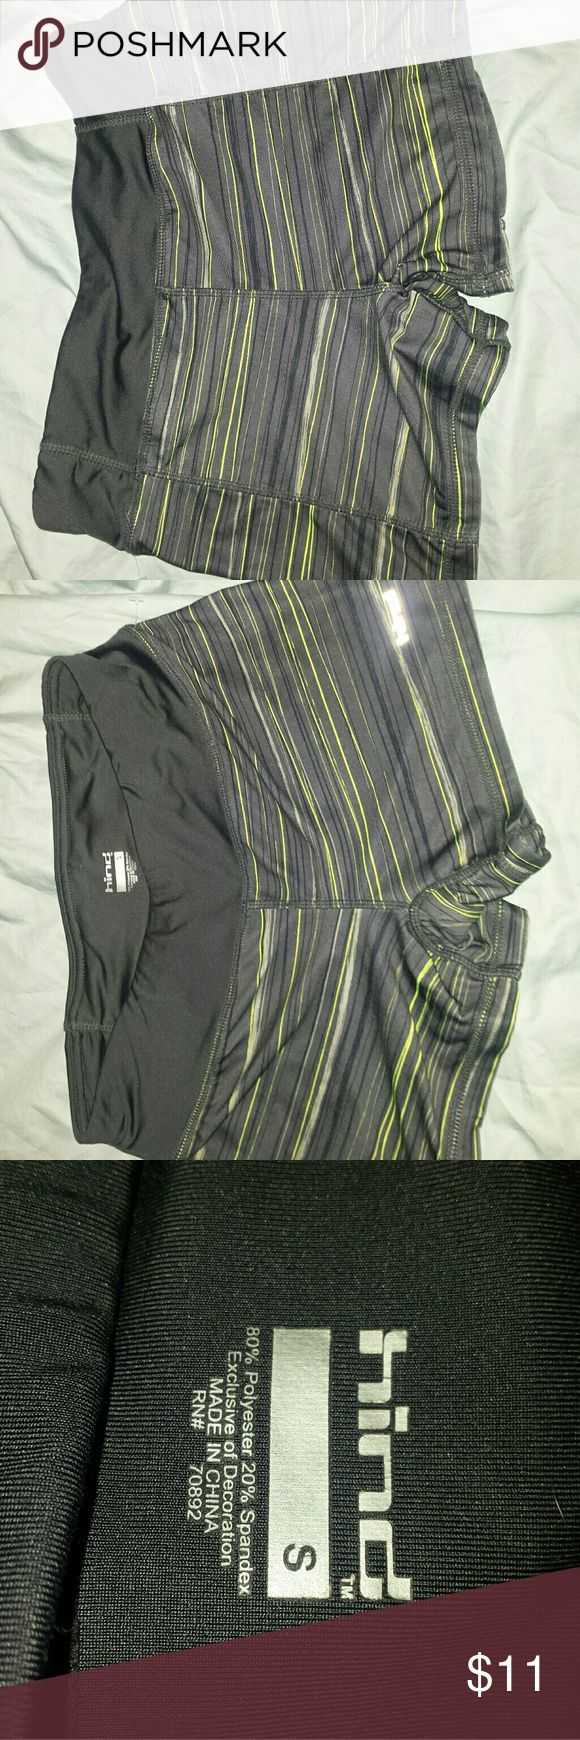 Hind exercise shorts ladies small Black with lime green hind workout shorts very nice condition. Fitness shorts. hind Shorts